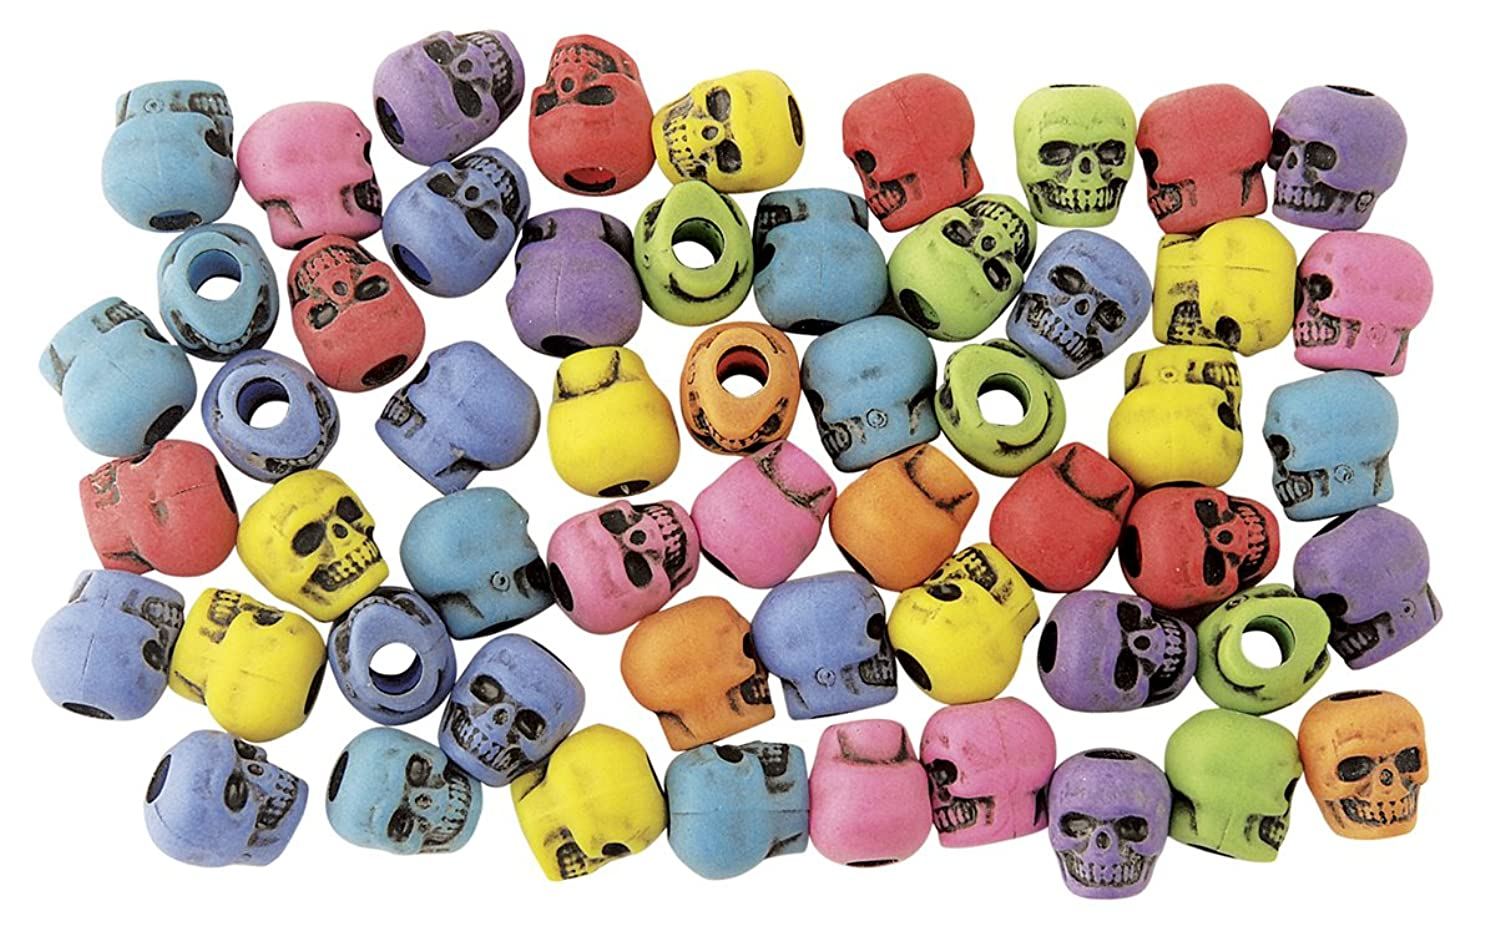 The Beadery 4-Ounce Bag of Skull Beads, Circus Multi with Black Antiquing